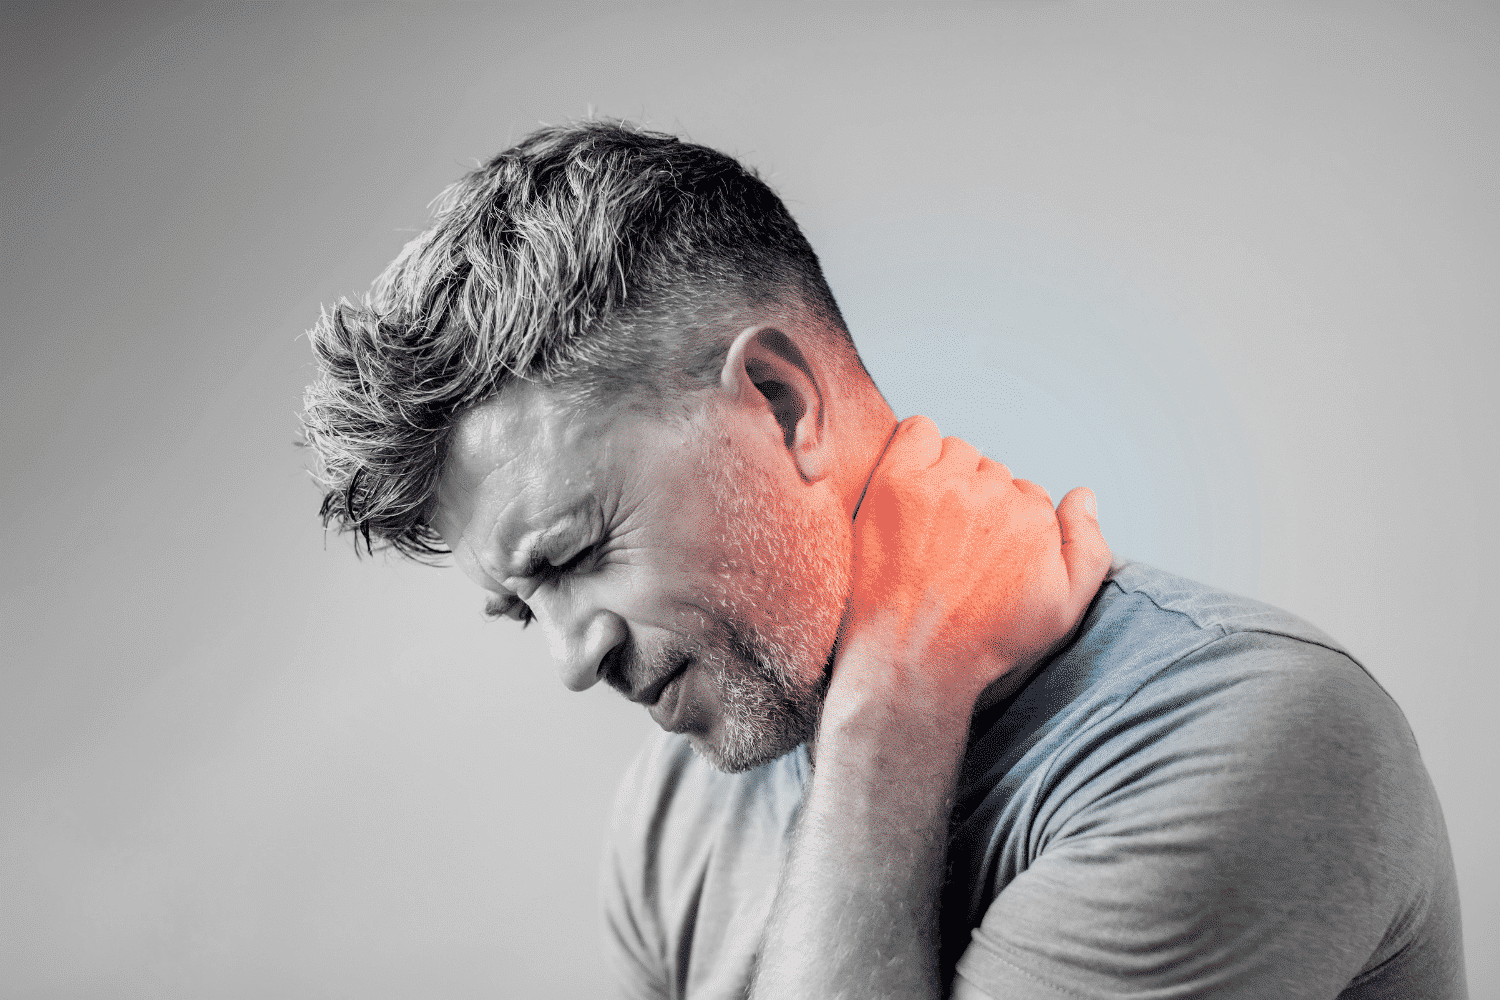 Neck Injuries After Car Accident - How To Prevent Them